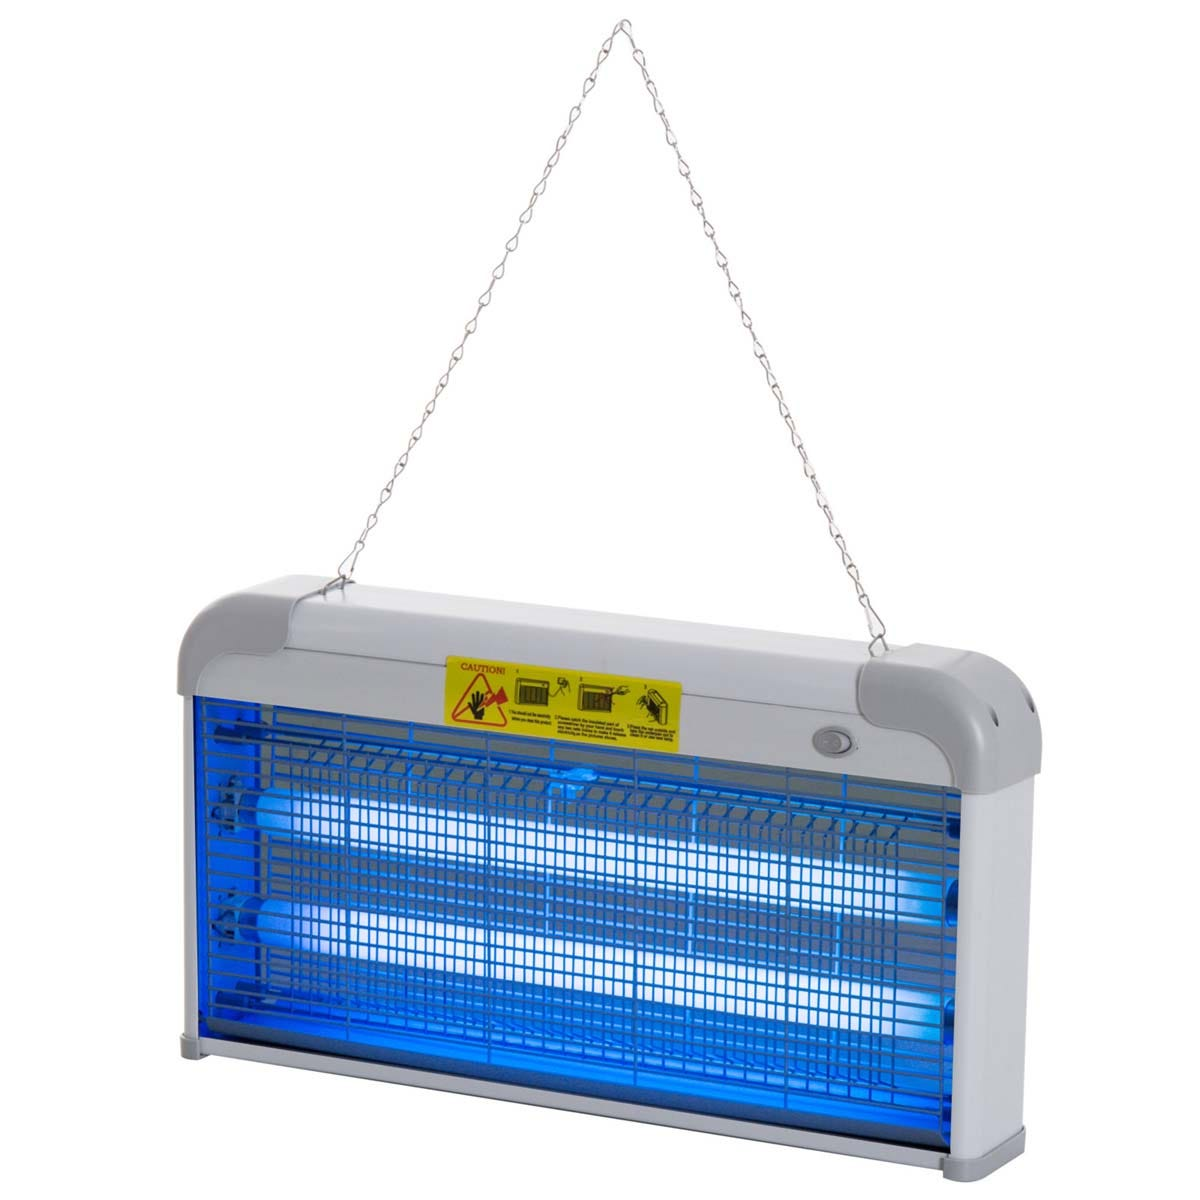 Outsunny Electric LED Mosquito Killer Lamp - Large